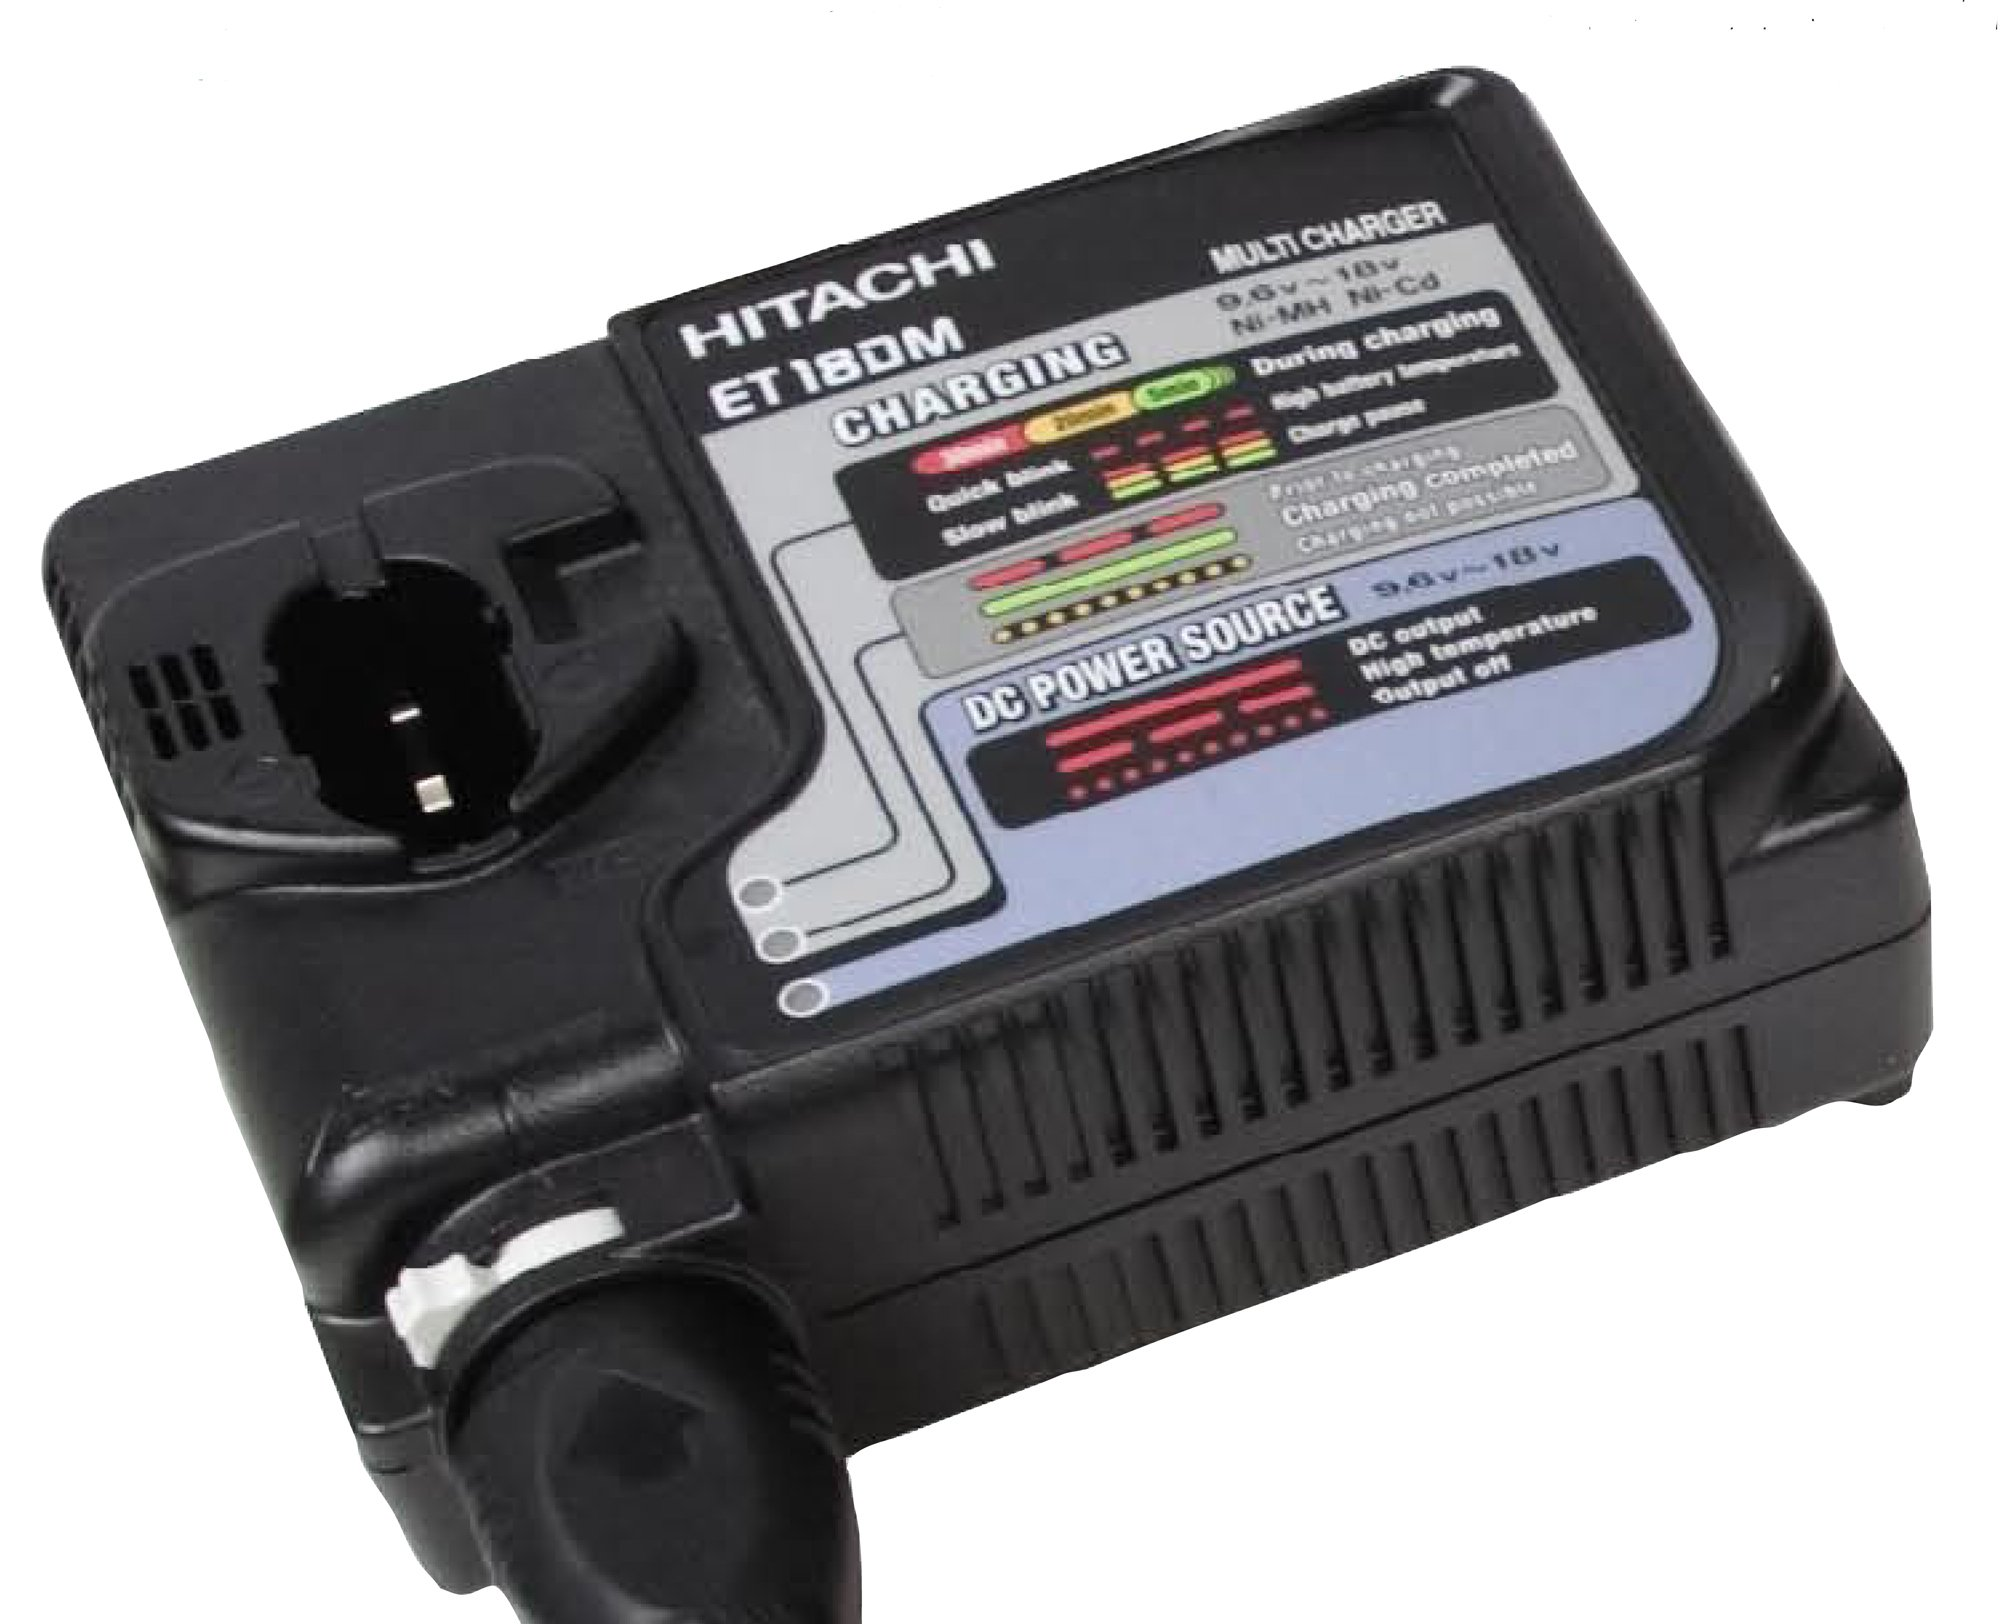 Hitachi ET18DM Universal AC/DC Rapid Charger 7.2 Volt to 18 Volt Ni-Cad and Ni-Metal Batteries  (Discontinued by Manufacturer)